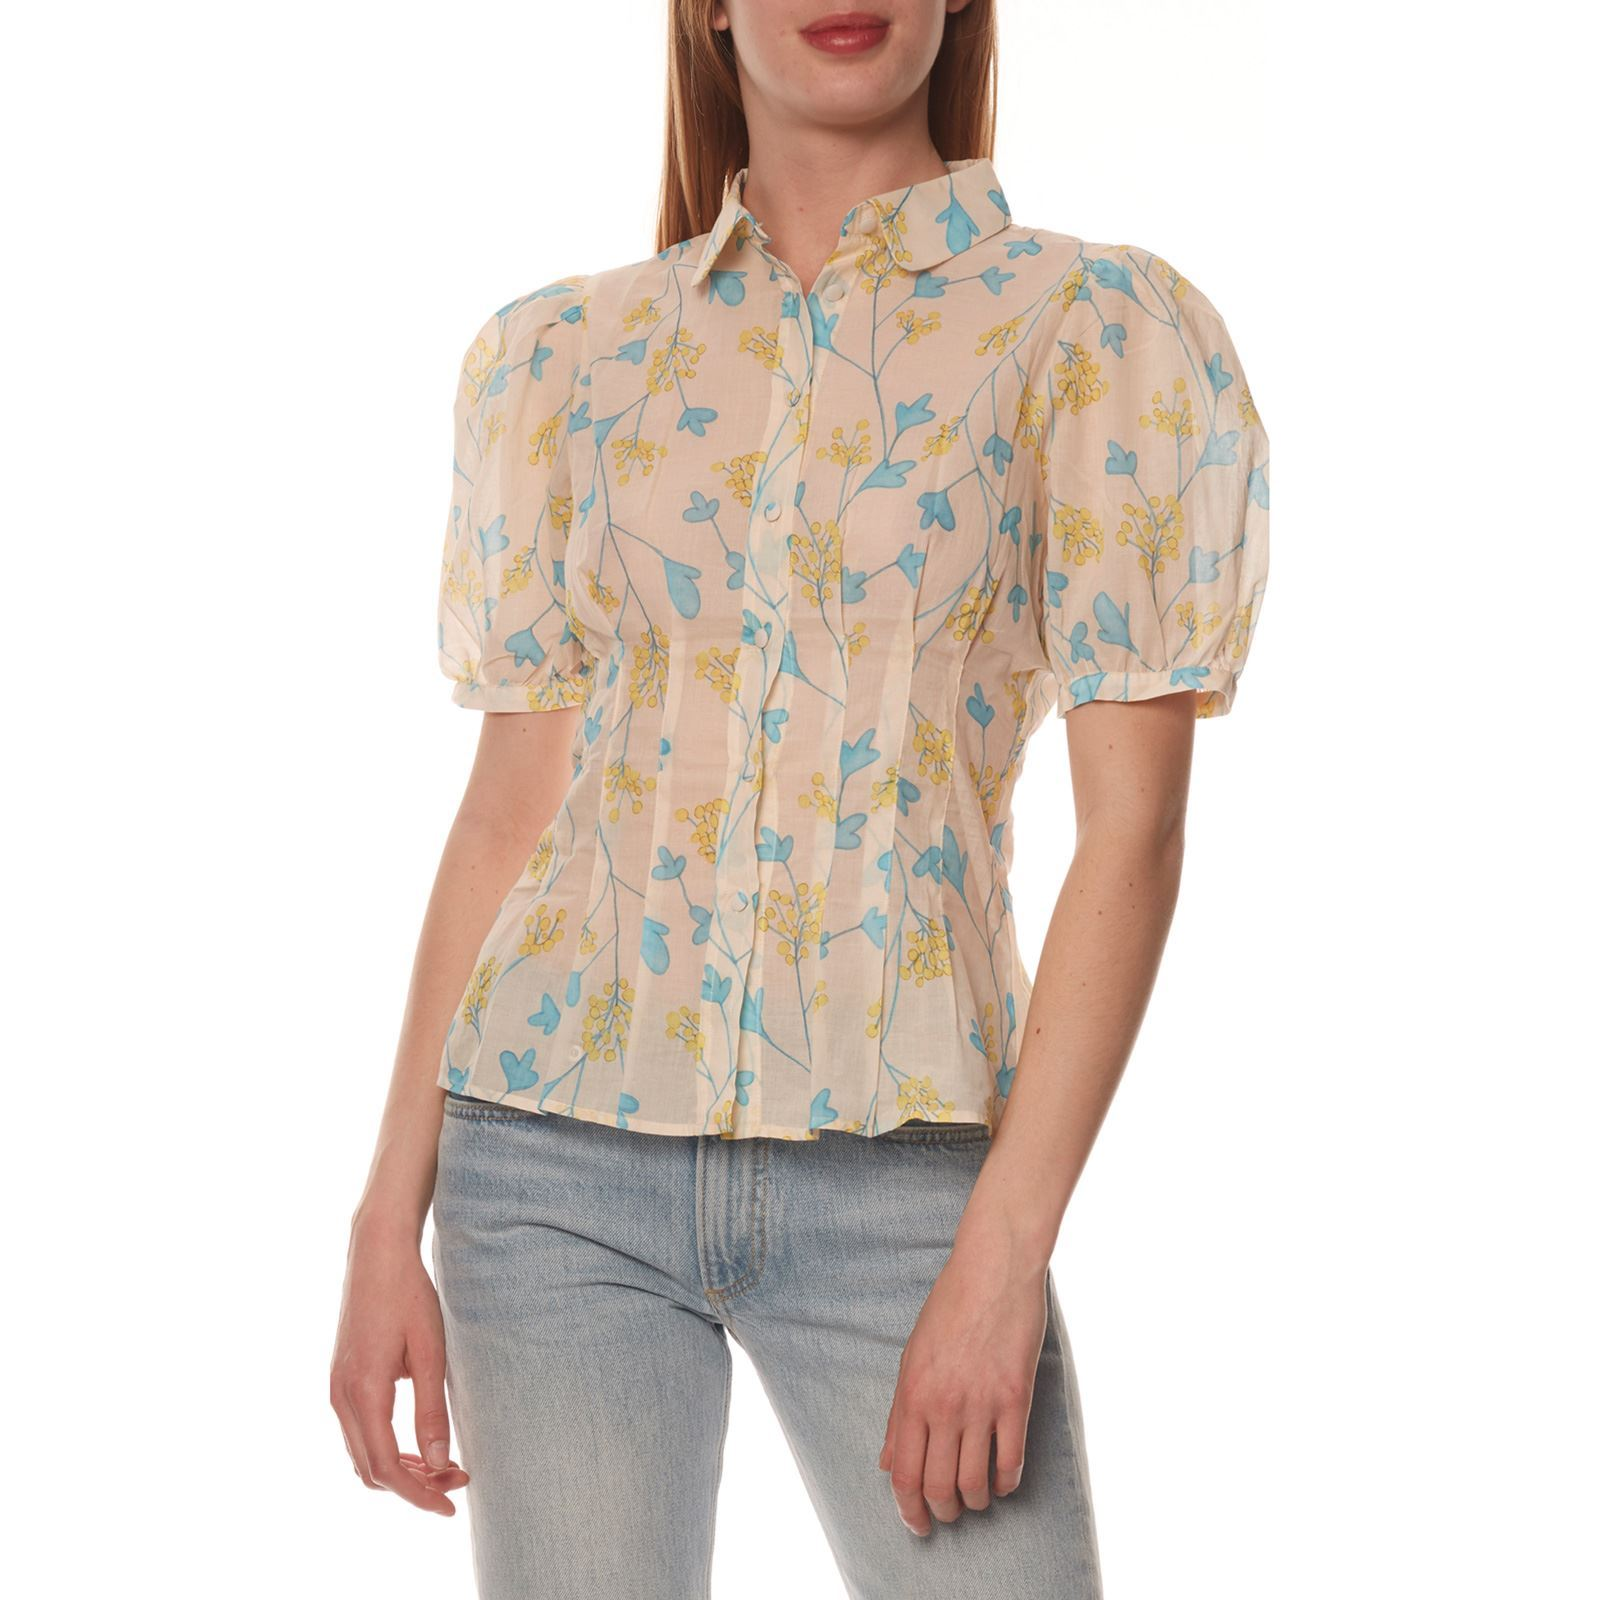 Manches Manches Benetton Chemise Chemise Chemise Benetton CourtesCr CourtesCr Benetton Manches fg6ybY7